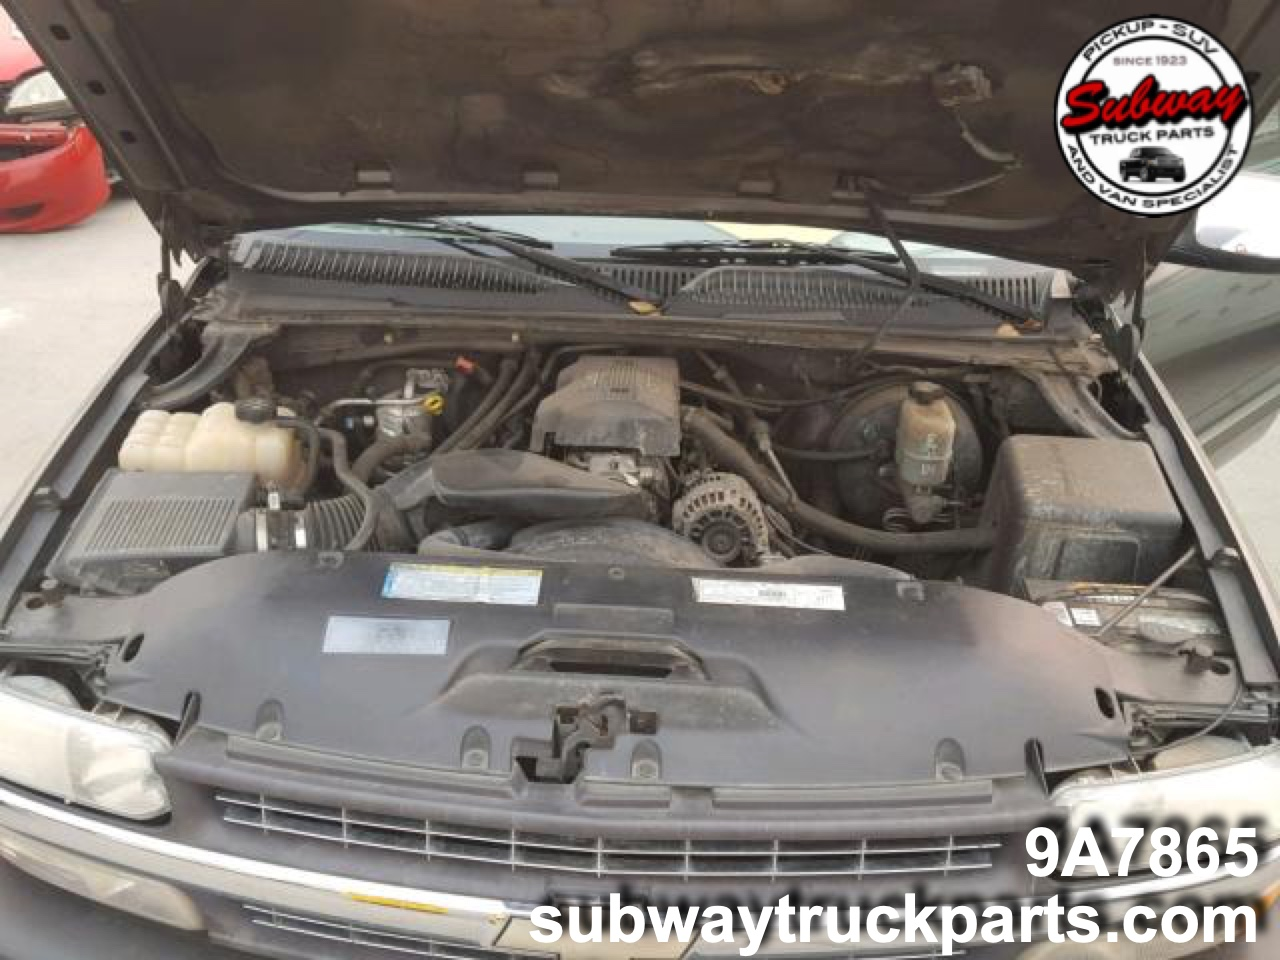 Chevy Parts Online - Aftermarket & OEM Replacement - 1A Auto